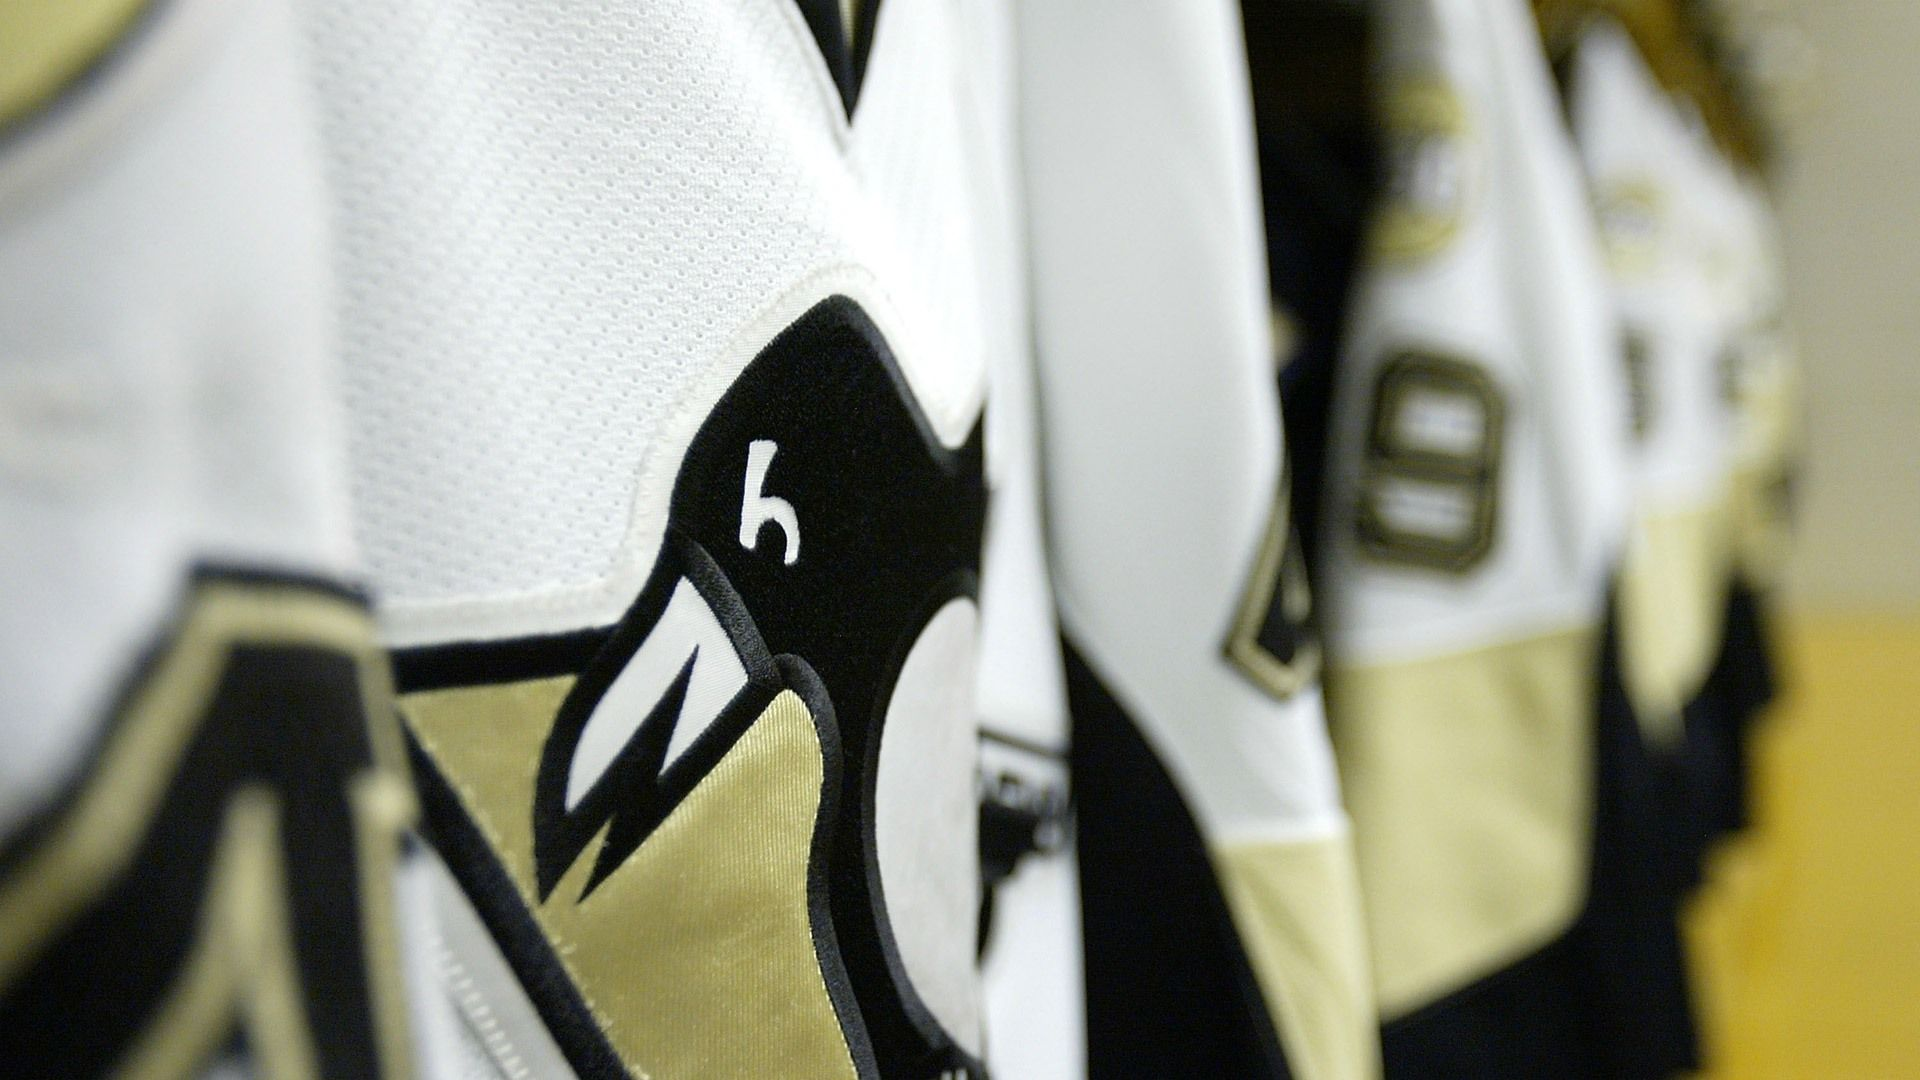 pittsburgh-penguins-jerseys